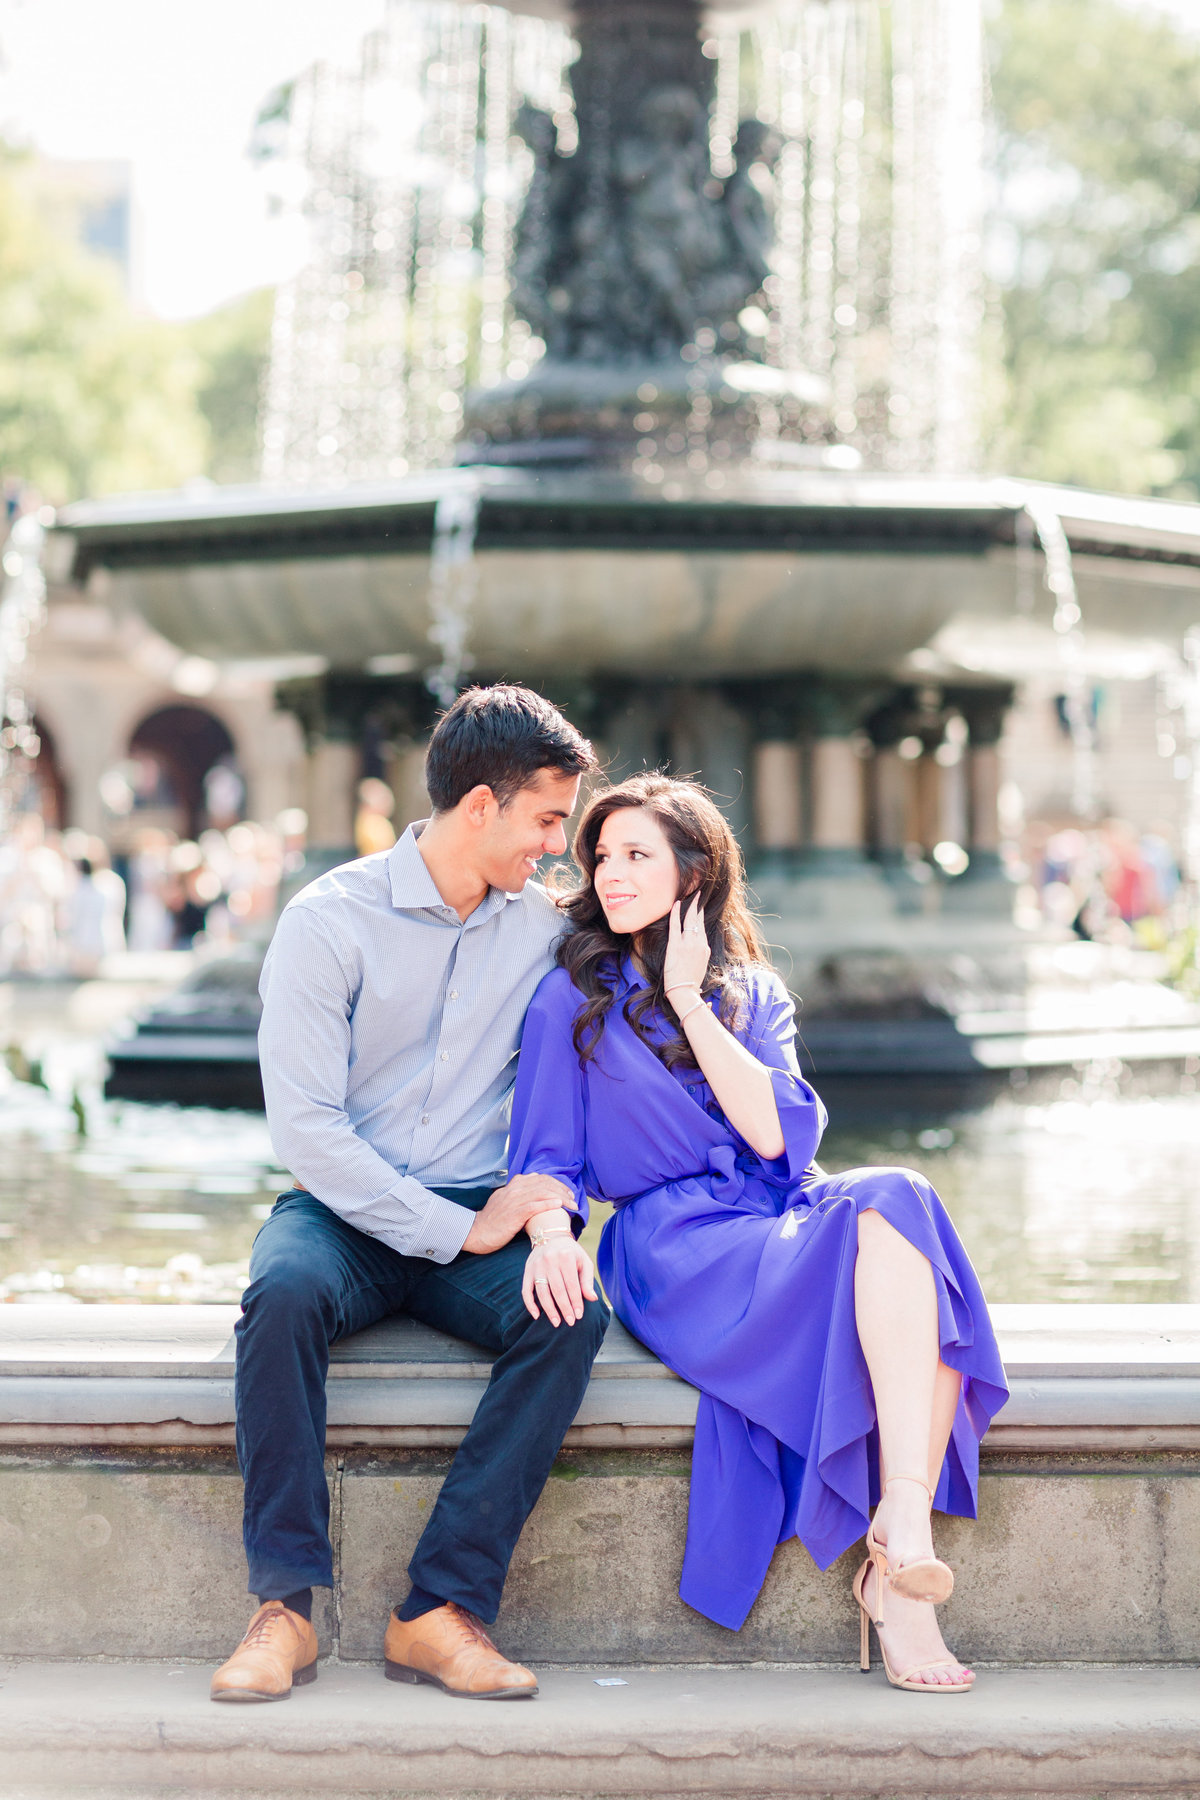 Lauren-Kearns-Central-Park-Engagement.jpg7